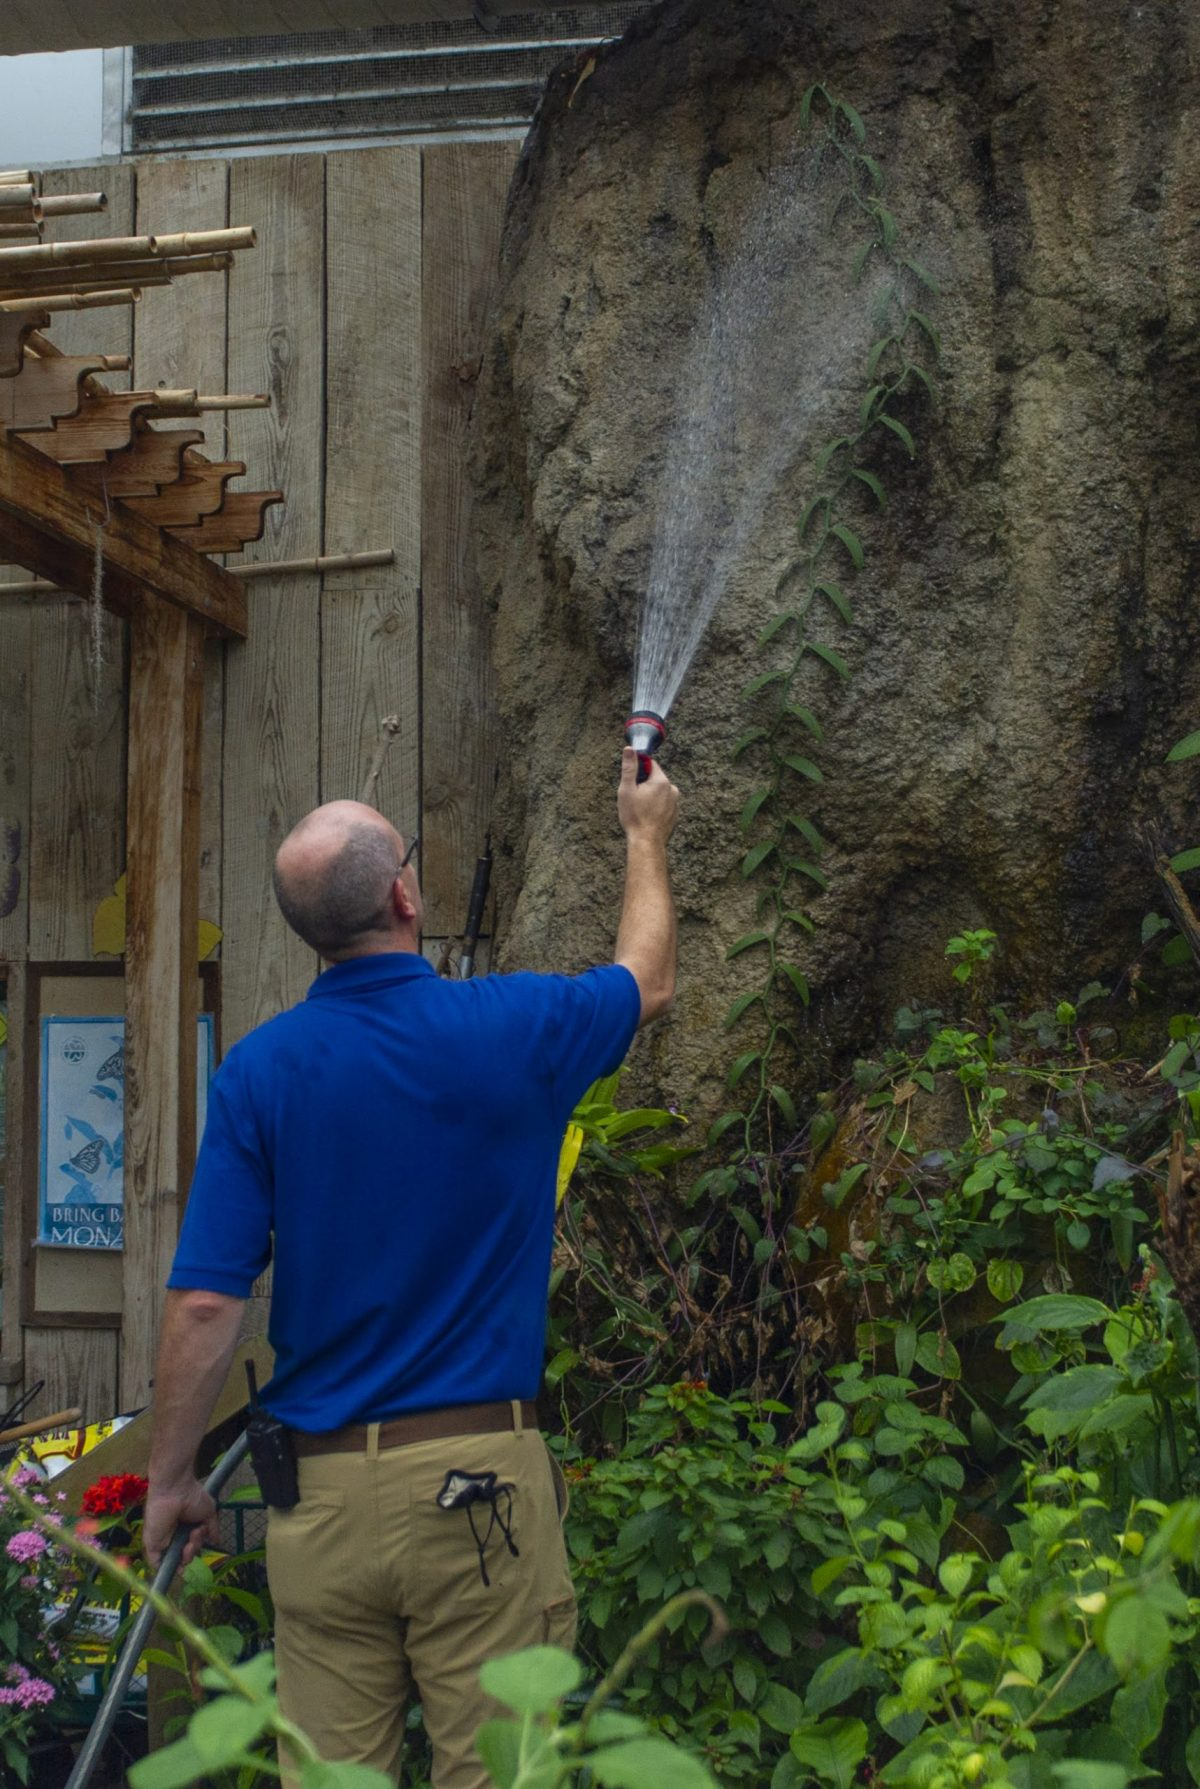 Horticulturist II Austin Prater waters plants, one of the many duties he undertakes each morning before guests arrive at the Aquarium